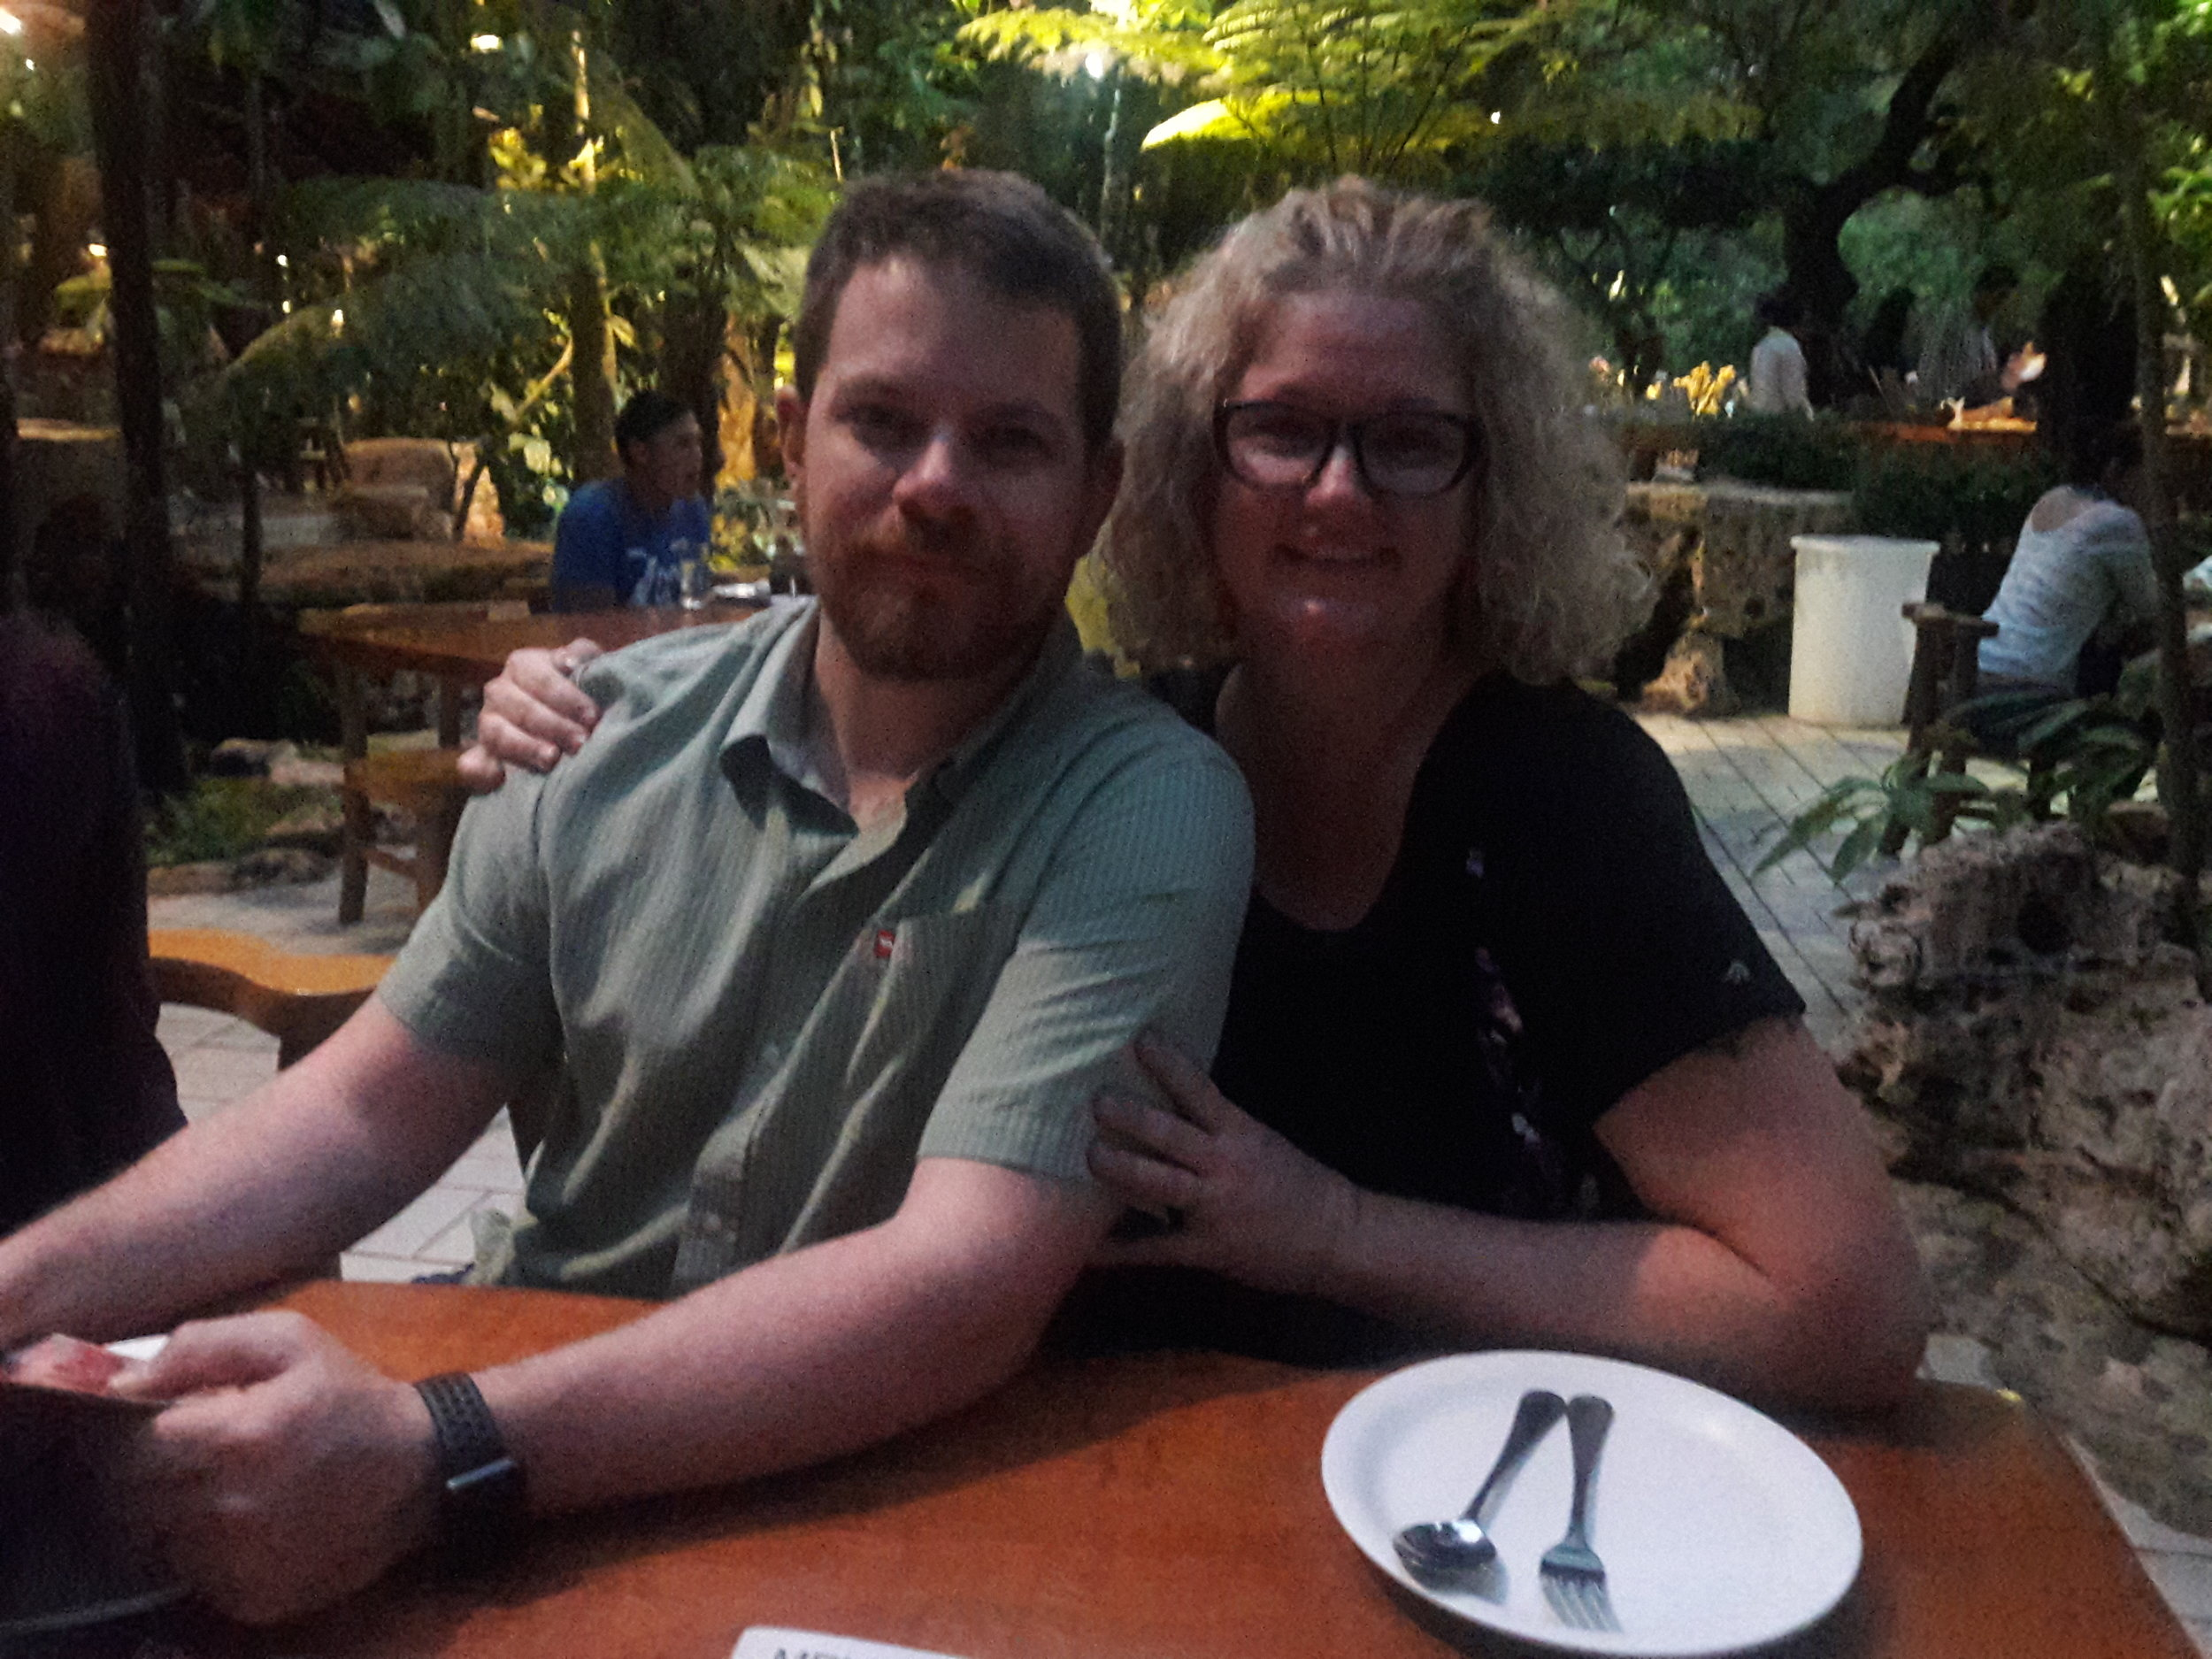 Tracy and Bryan's final dinner at Khaomao-Khaofang in Mae-Sot Thailand before heading home.